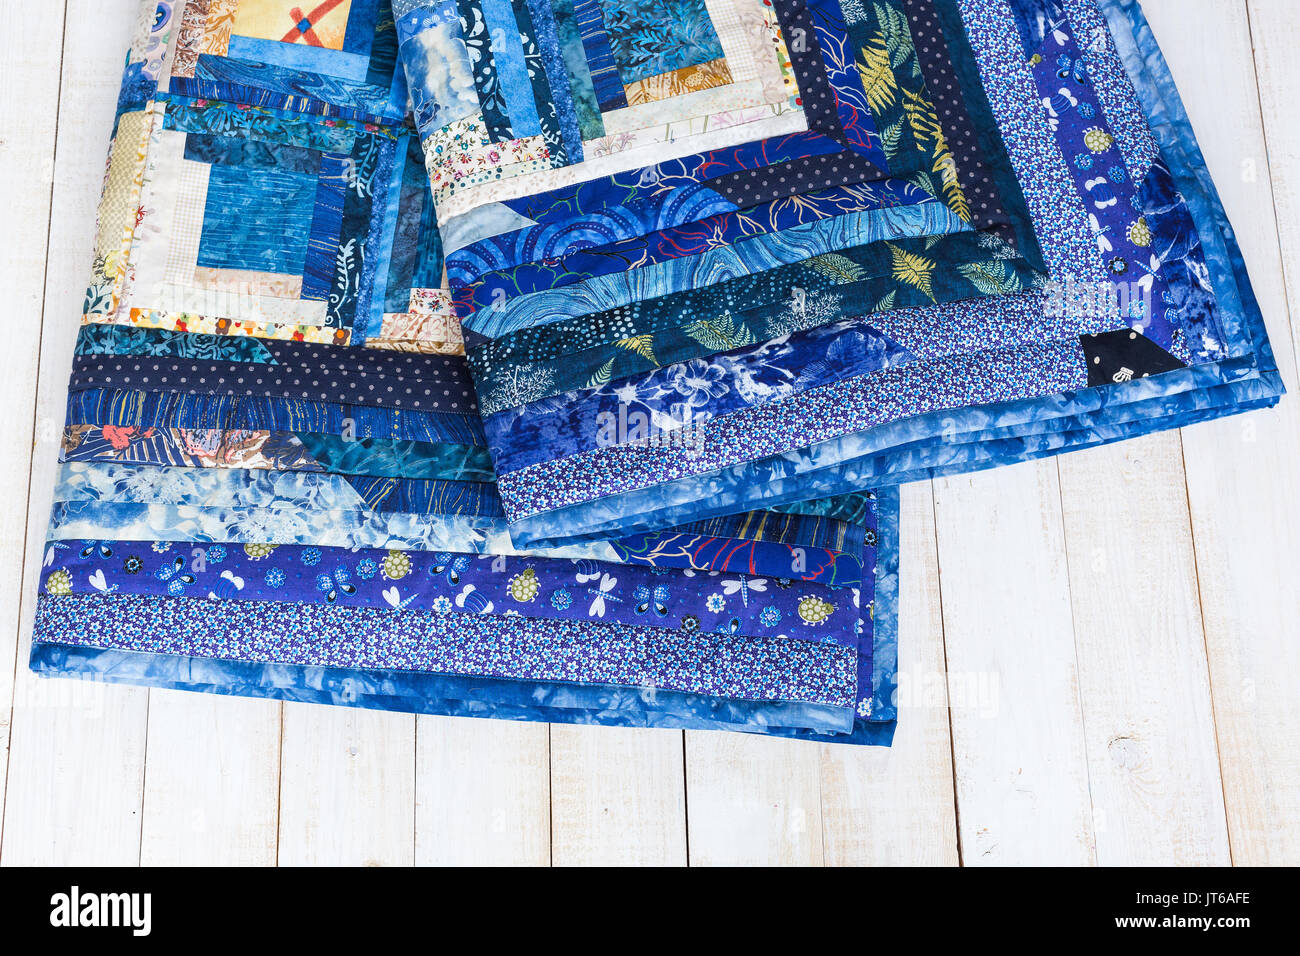 sewing, needlework, geometric, garment industry, cosiness, comfort concept - deep blue colored plaid sewed of textile squares with magnificent print on white wooden boards - Stock Image